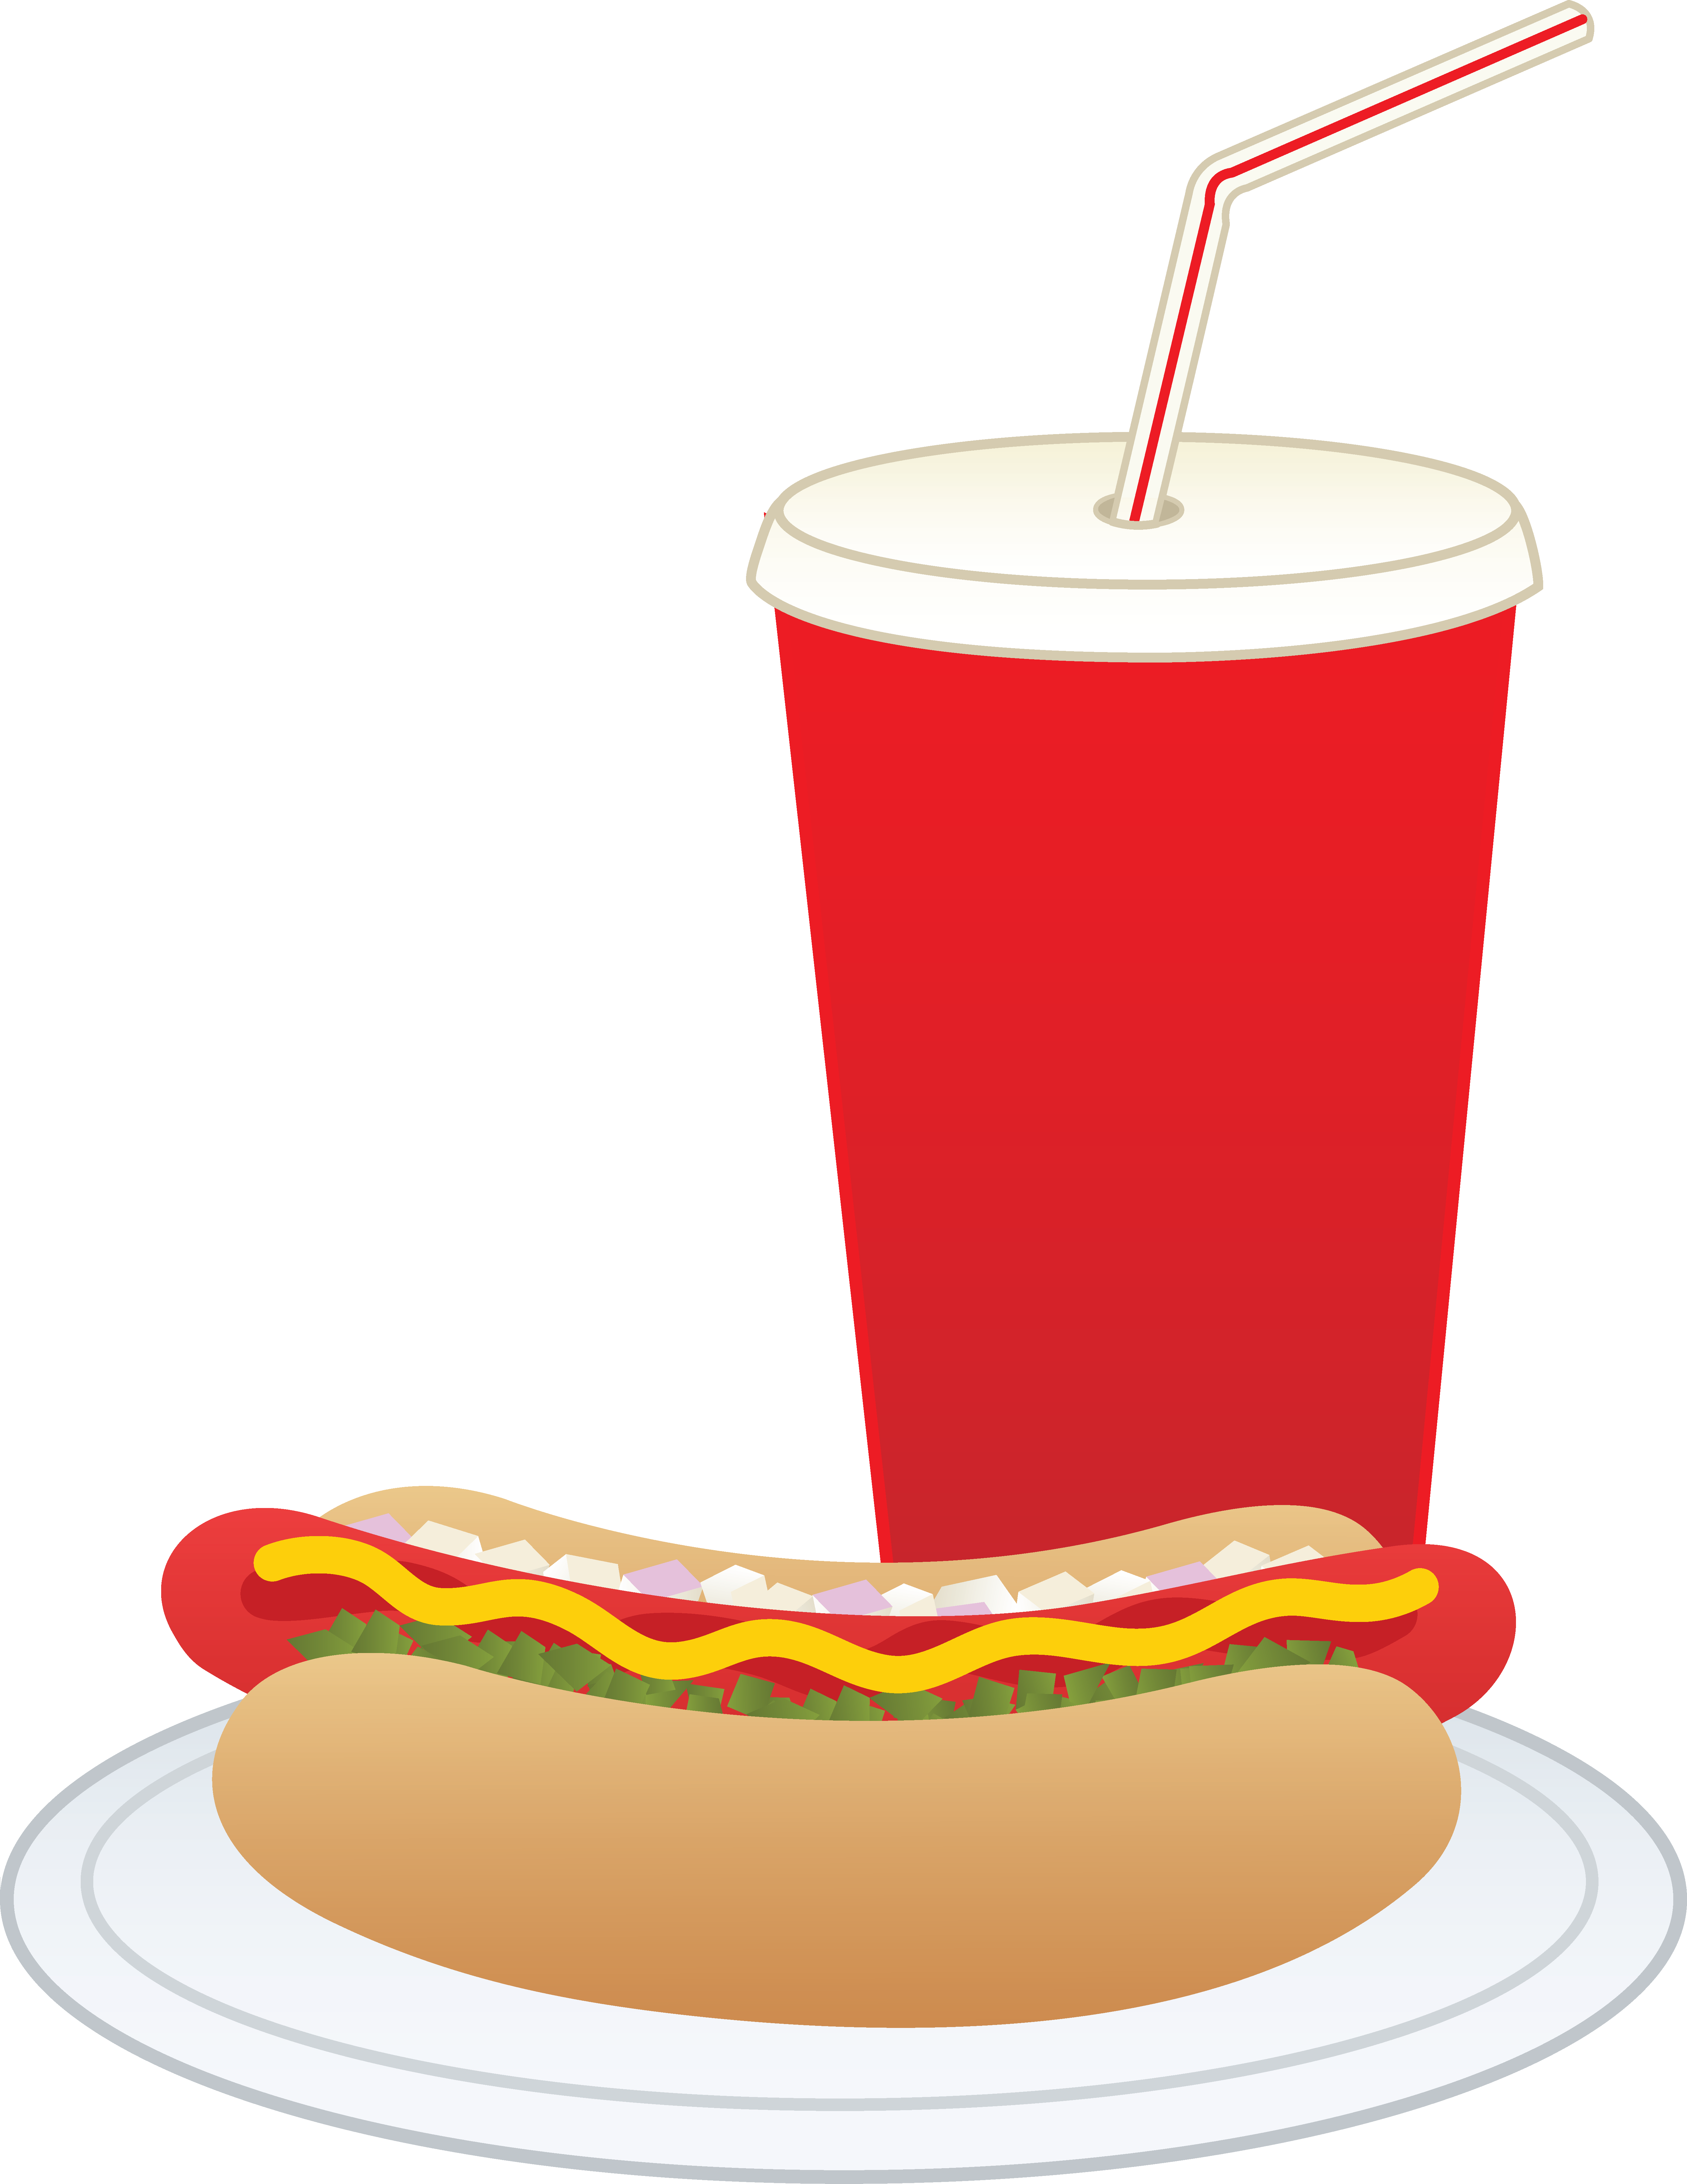 drink clipart dog soda drinks clip hotdog dogs food soft coke chips cliparts softdrink transparent library barque cream vippng pop